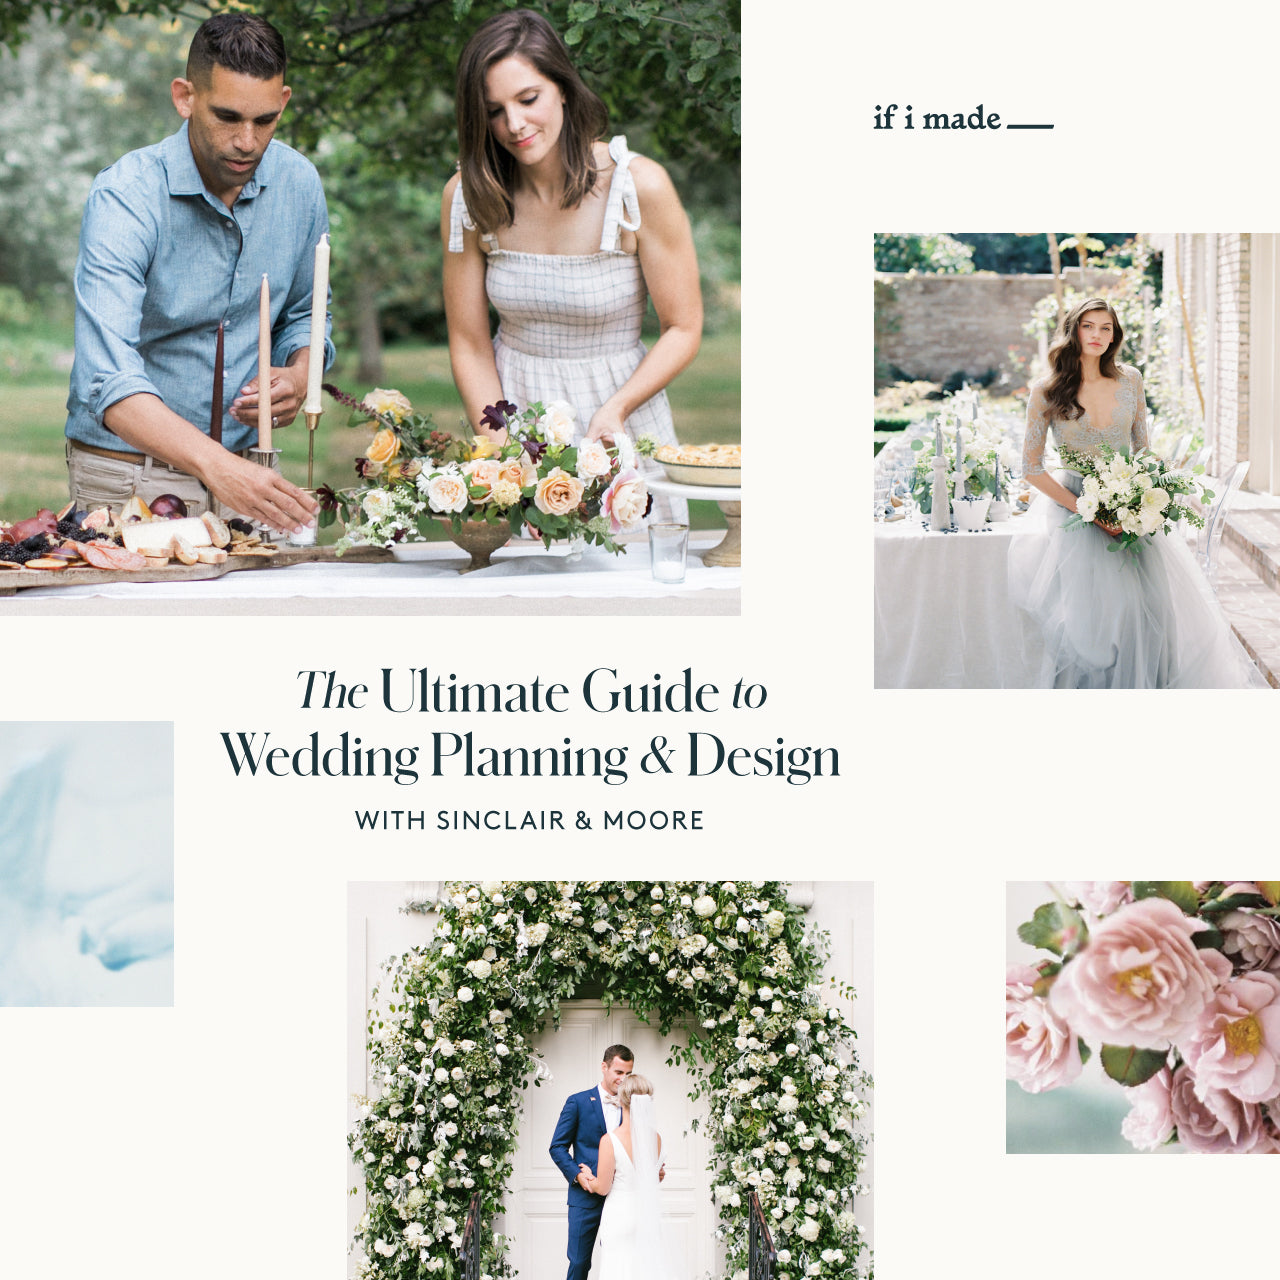 The Ultimate Guide to Wedding Planning & Design with Sinclair & Moore (SPP0420) - 18 payments of $99